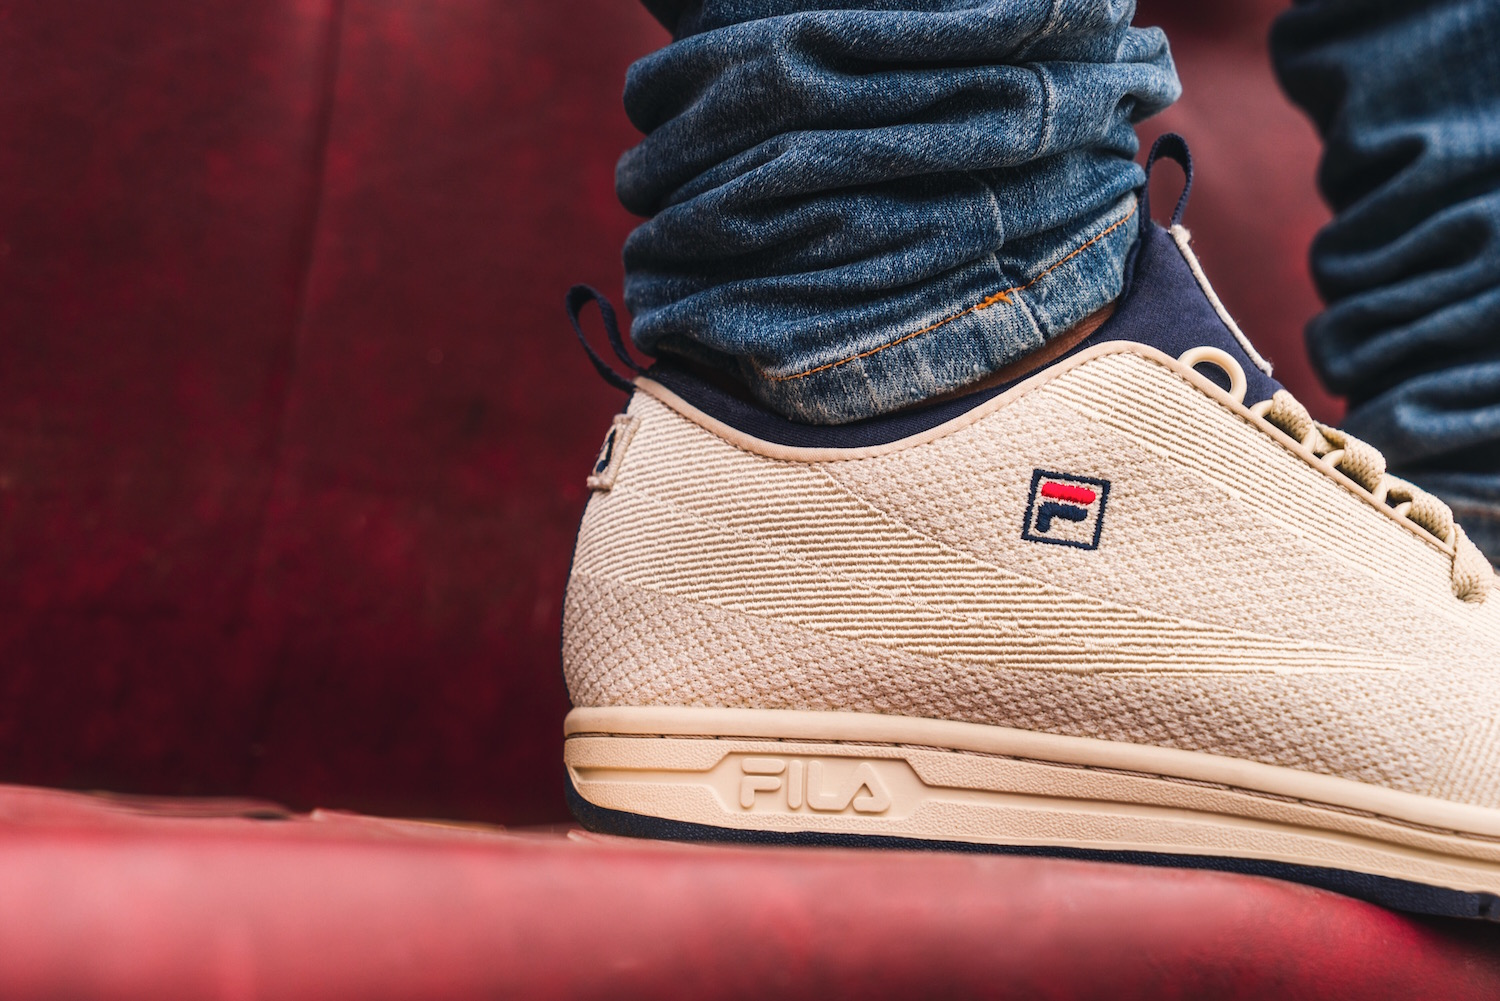 The Fila Original Tennis Gets Updated With Knit Construction